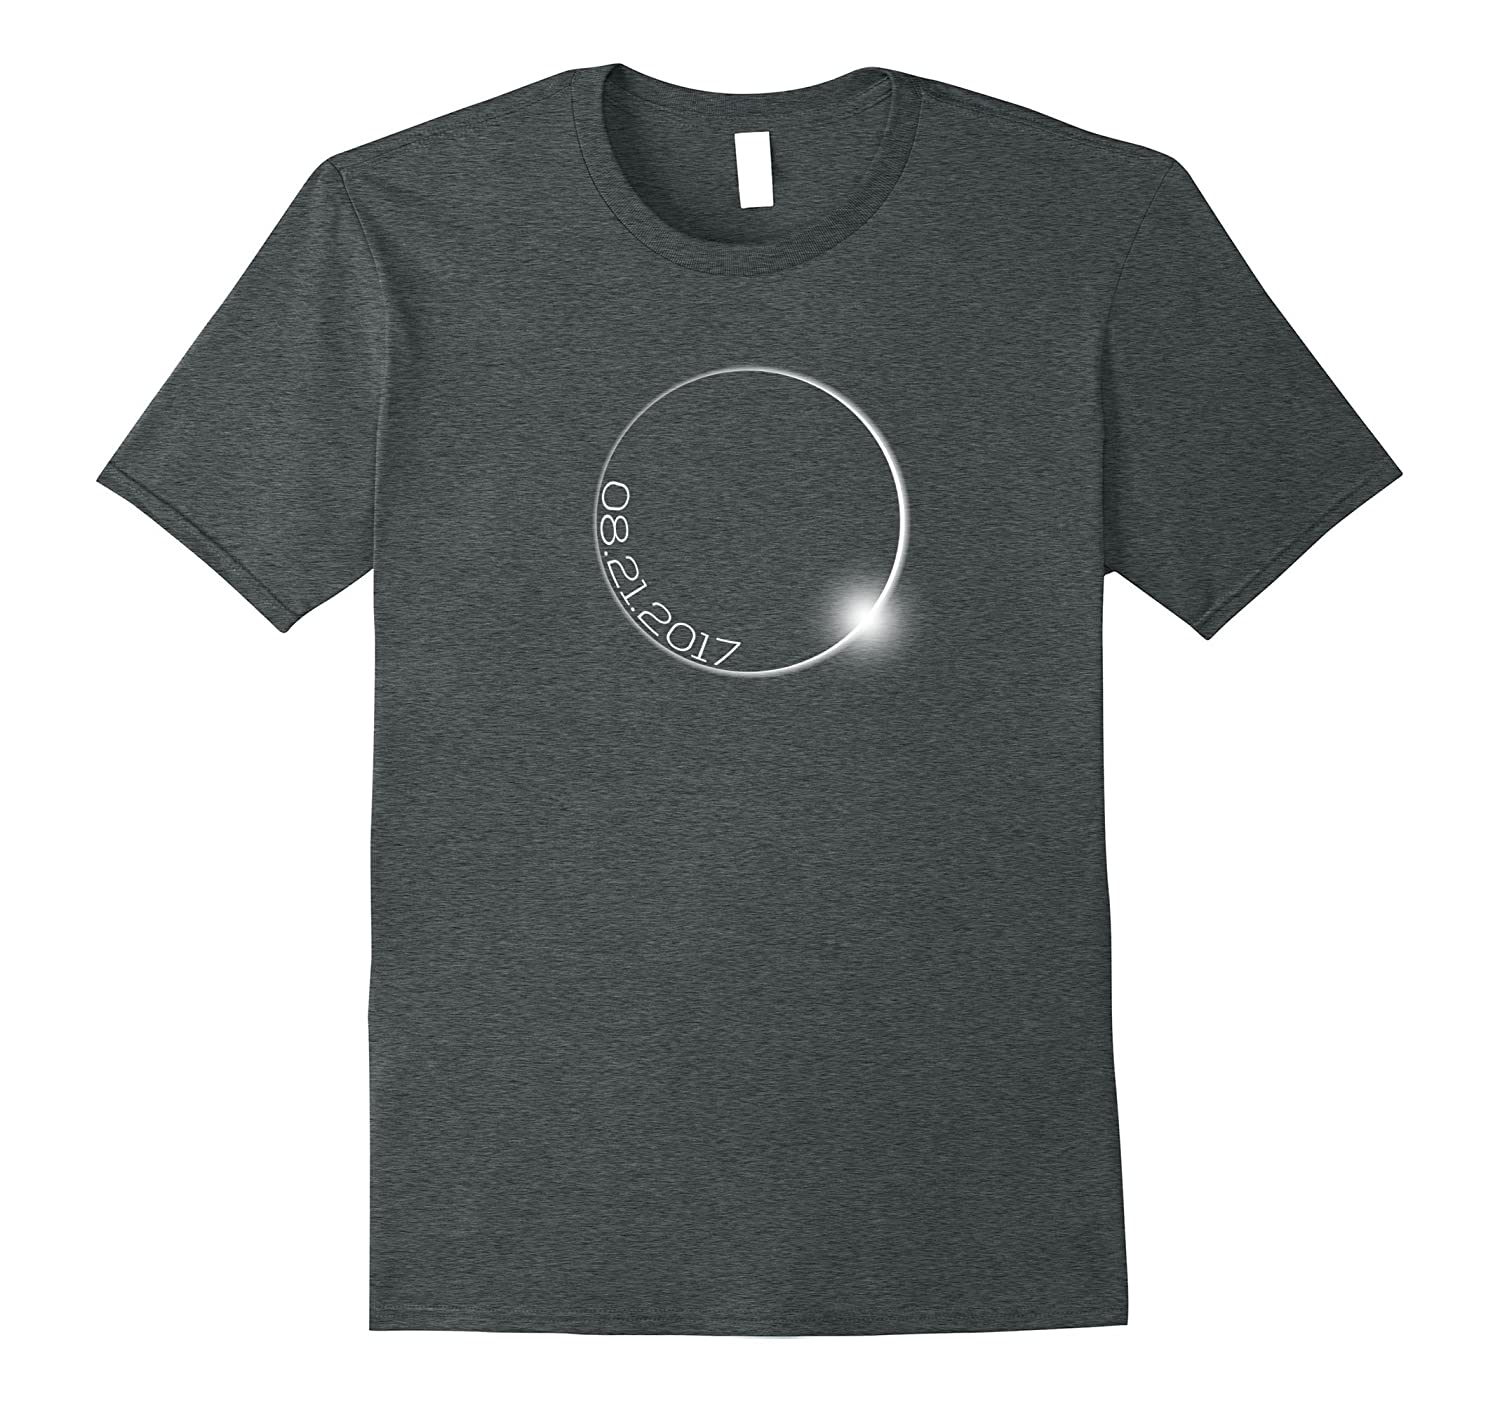 Solar Eclipse Outline With Date Tee Shirt for Men Women Kids-TH